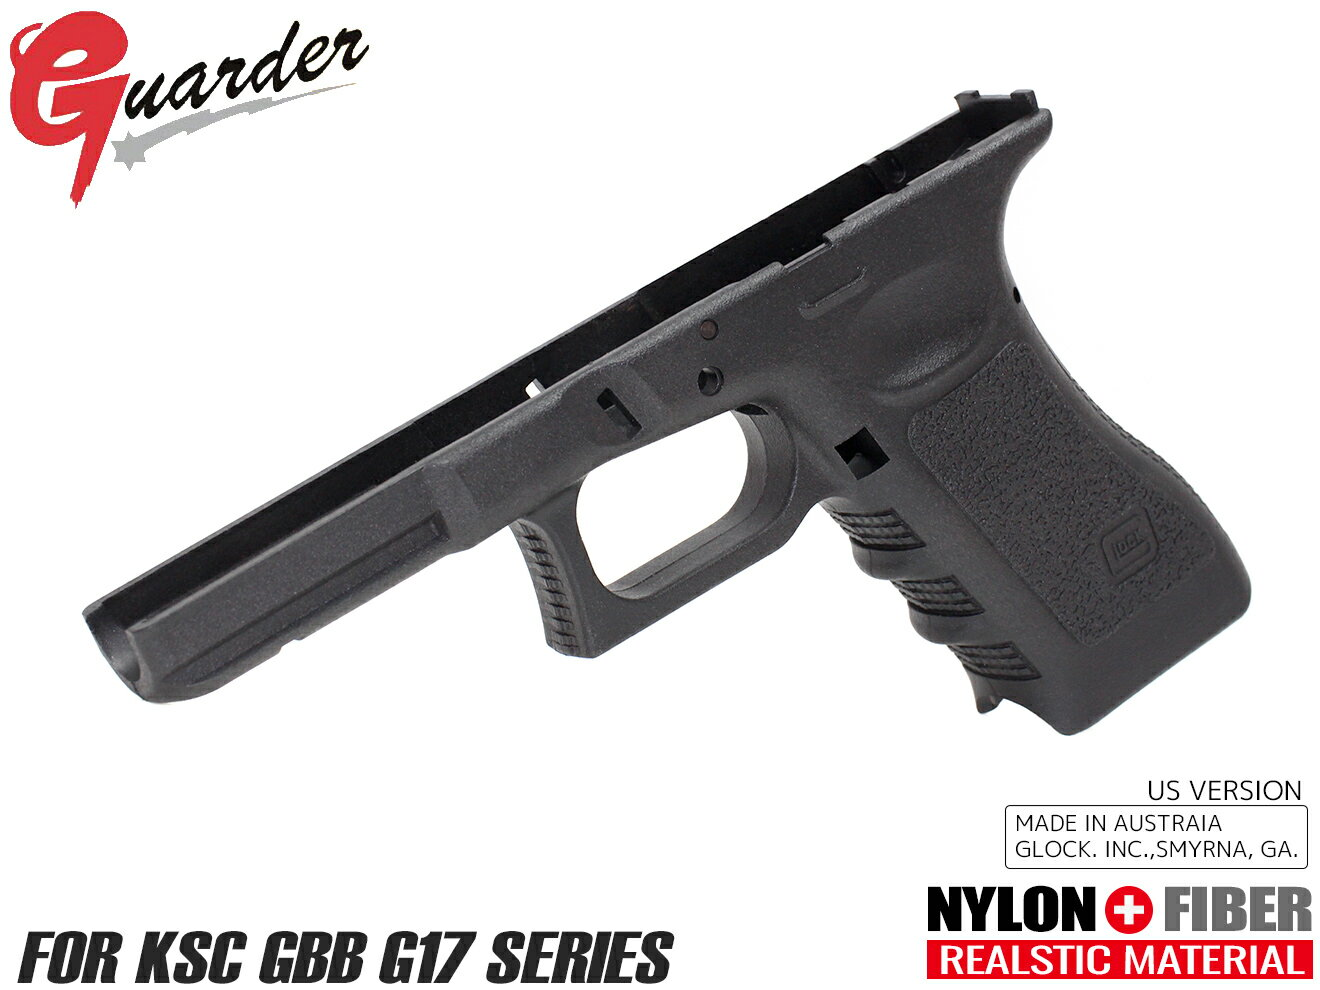 装備・備品, その他 NB-65GUARDER KSC GLOCK Gen.3 US VerKSCKWA G17 US